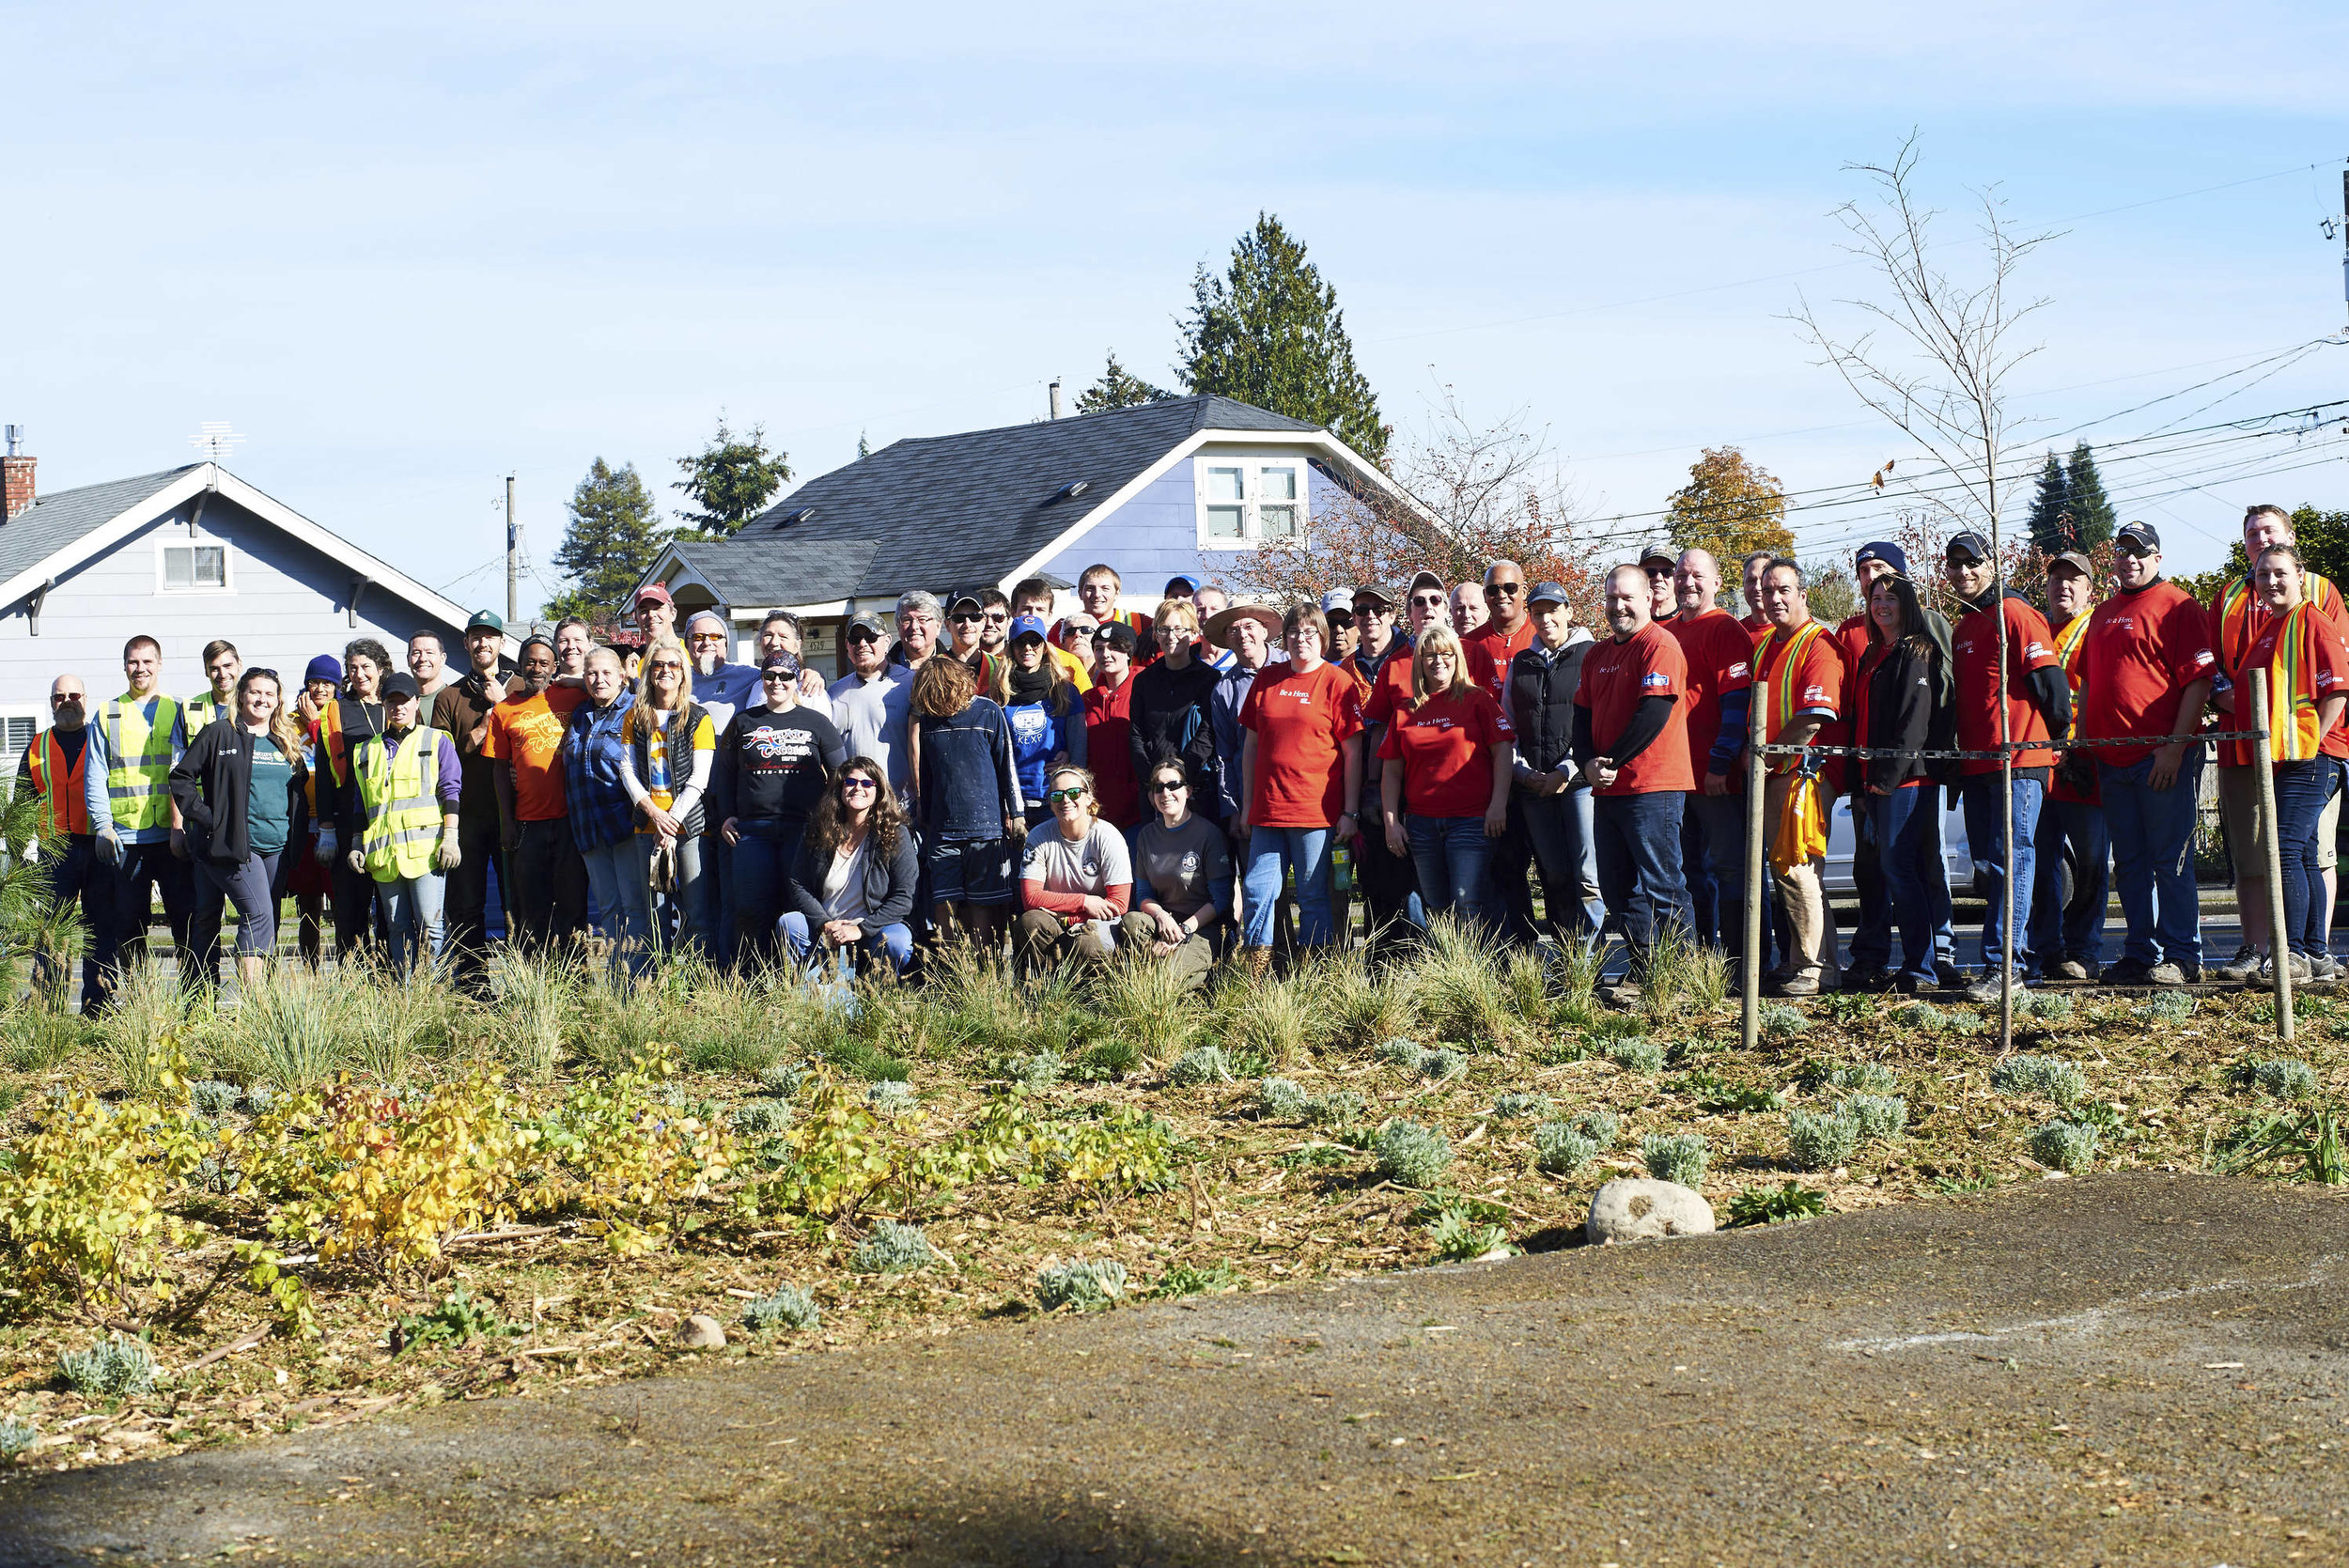 Our success depends on deep and lasting relationships with diverse communities across our state. Pictured are volunteers during Make a Difference Day, October 2016. Photo ©Michael B Maine.